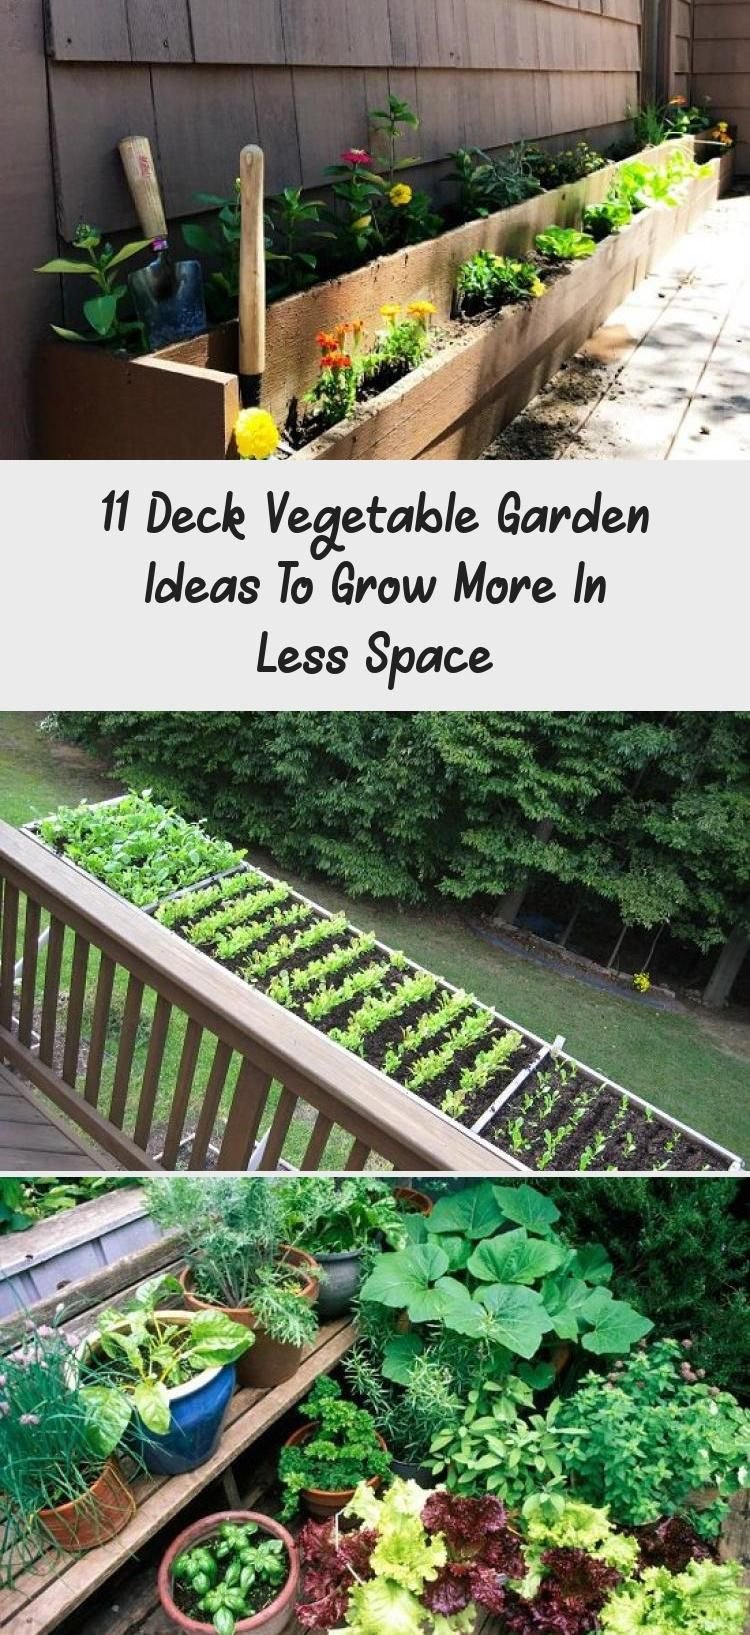 11 Deck Vegetable Garden Ideas To Grow More In Less Space In 2020